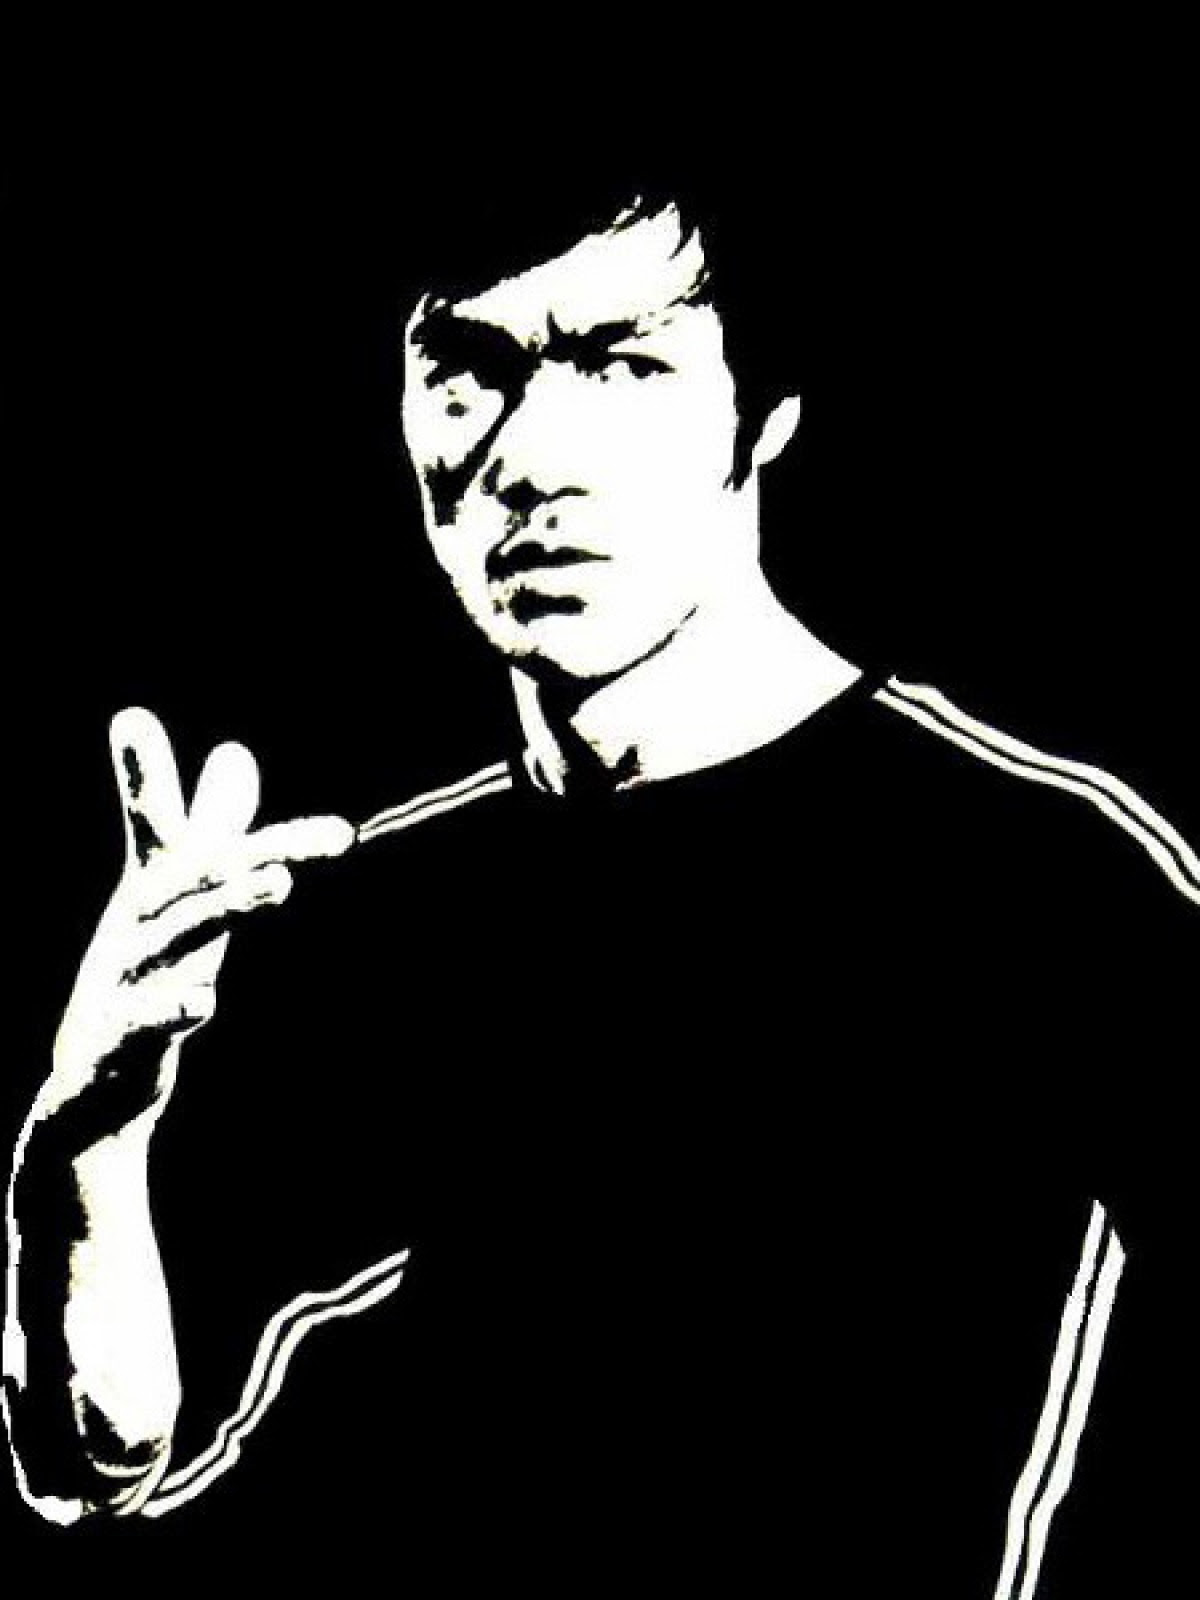 Bruce Lee Quotes Mobile Wallpaper Mobiles Wall